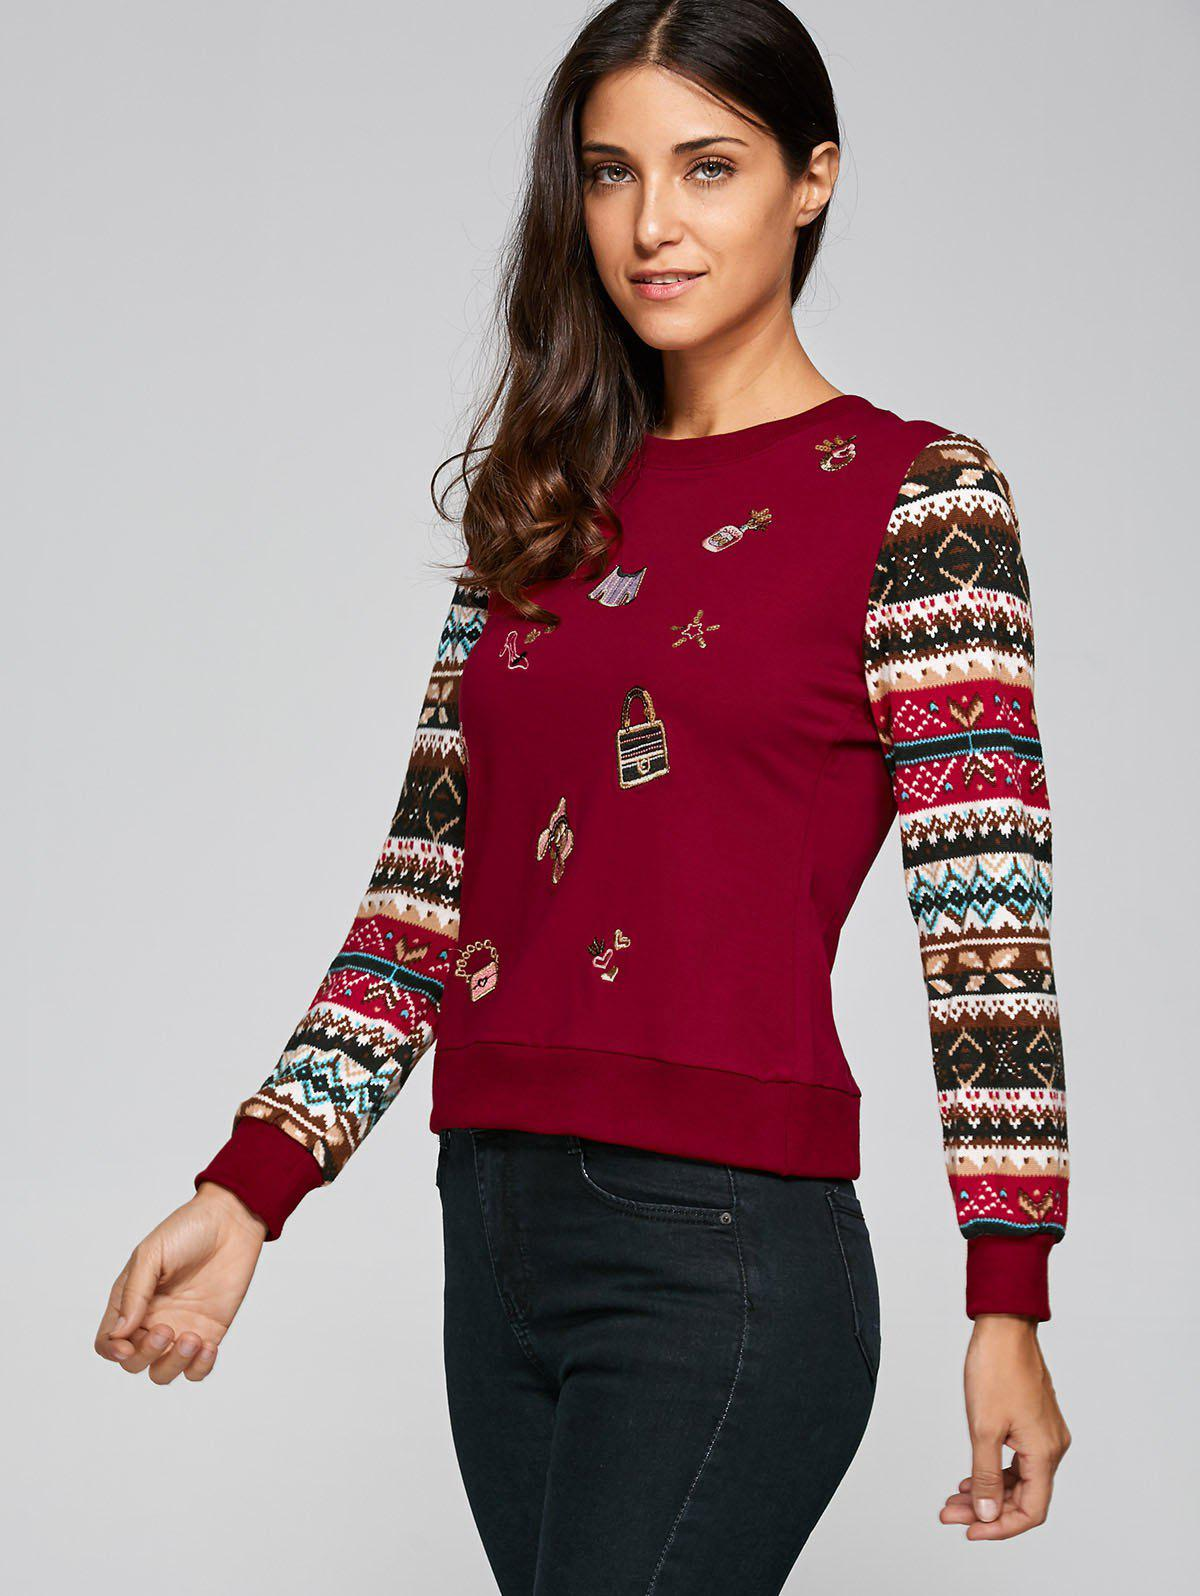 Fashion Festival Sequins Embroidery Christmas Graphic Sweatshirt